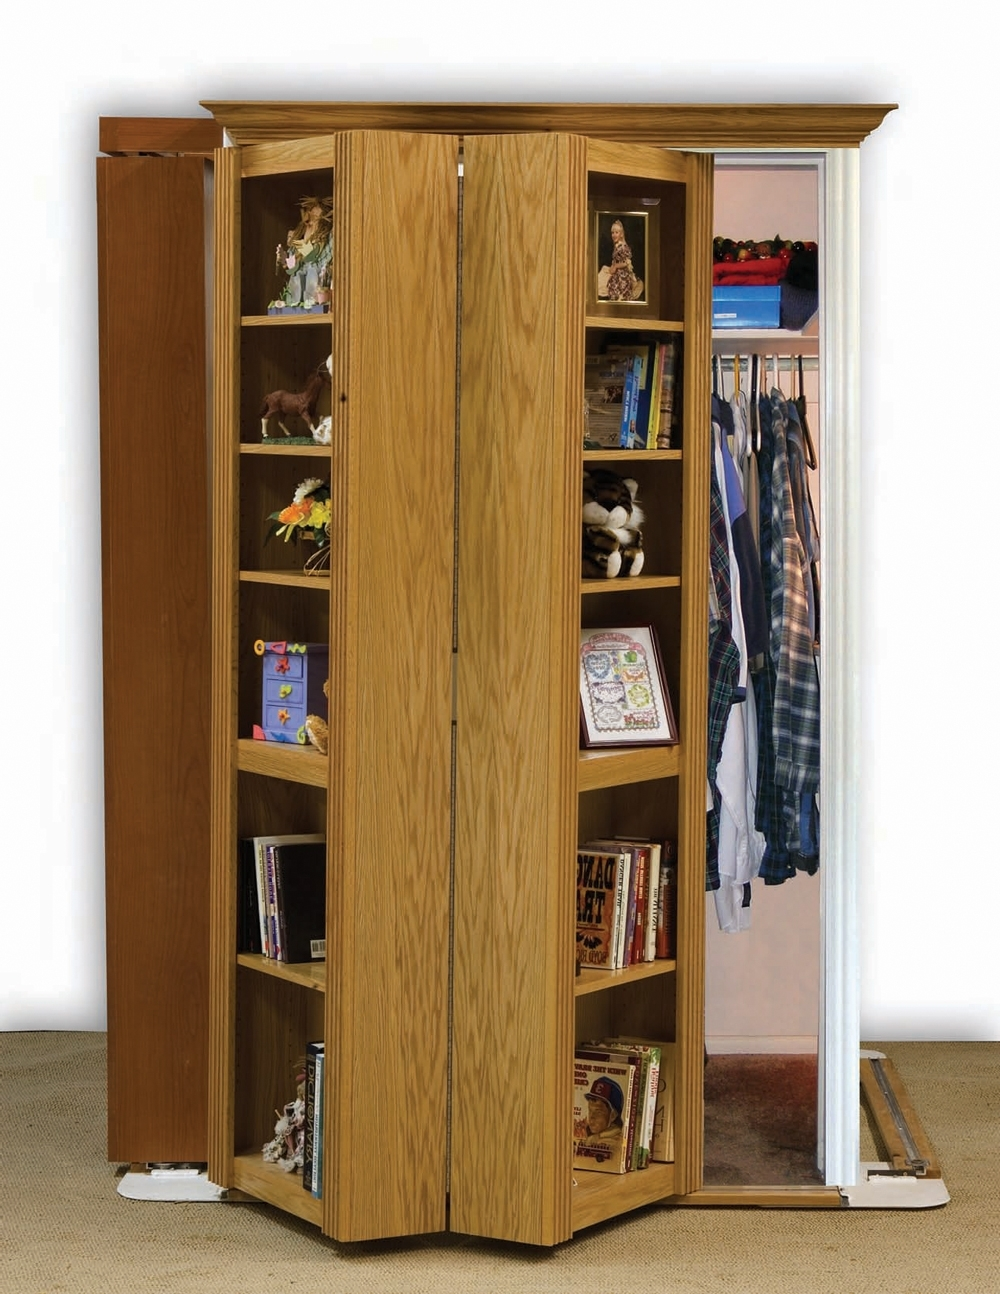 New Secret Door Kits From Rockler – Kits Make Easy To Build Secret In Favorite Secret Door Bookcases (View 11 of 15)